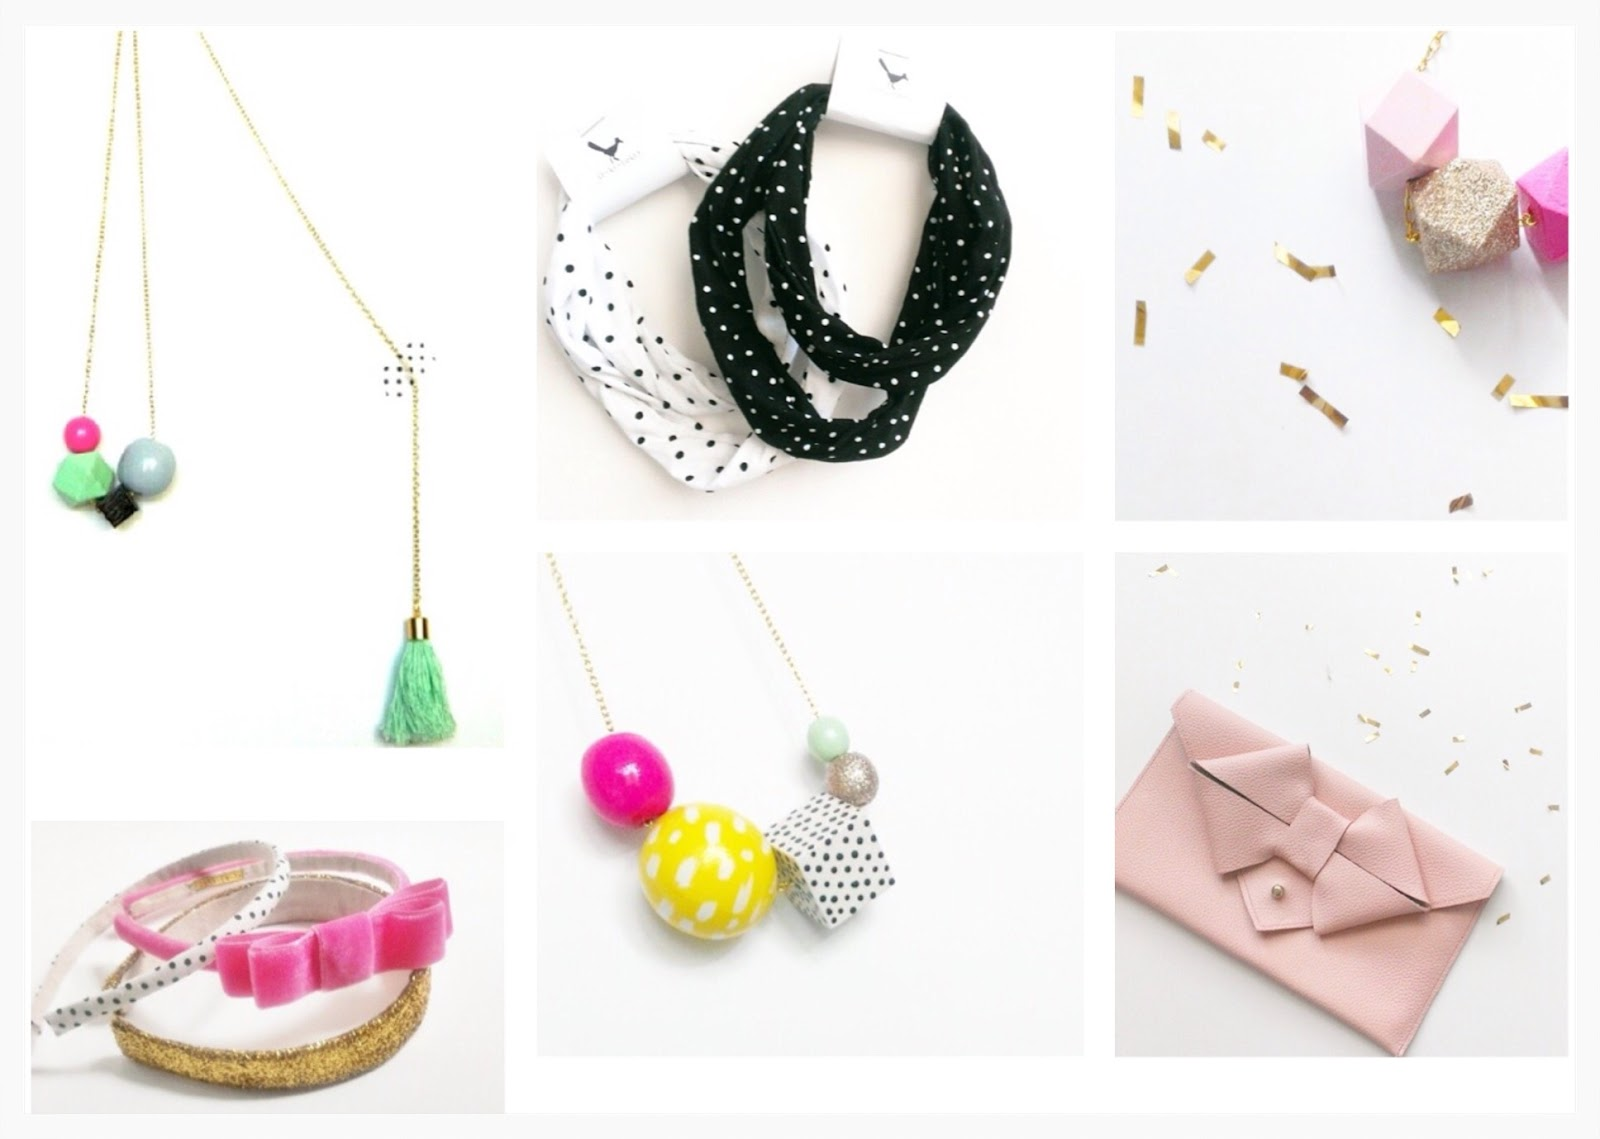 r-ki-tekt, r ki tekt, rkitekt, accessories, baubke necklaces, random pretty things